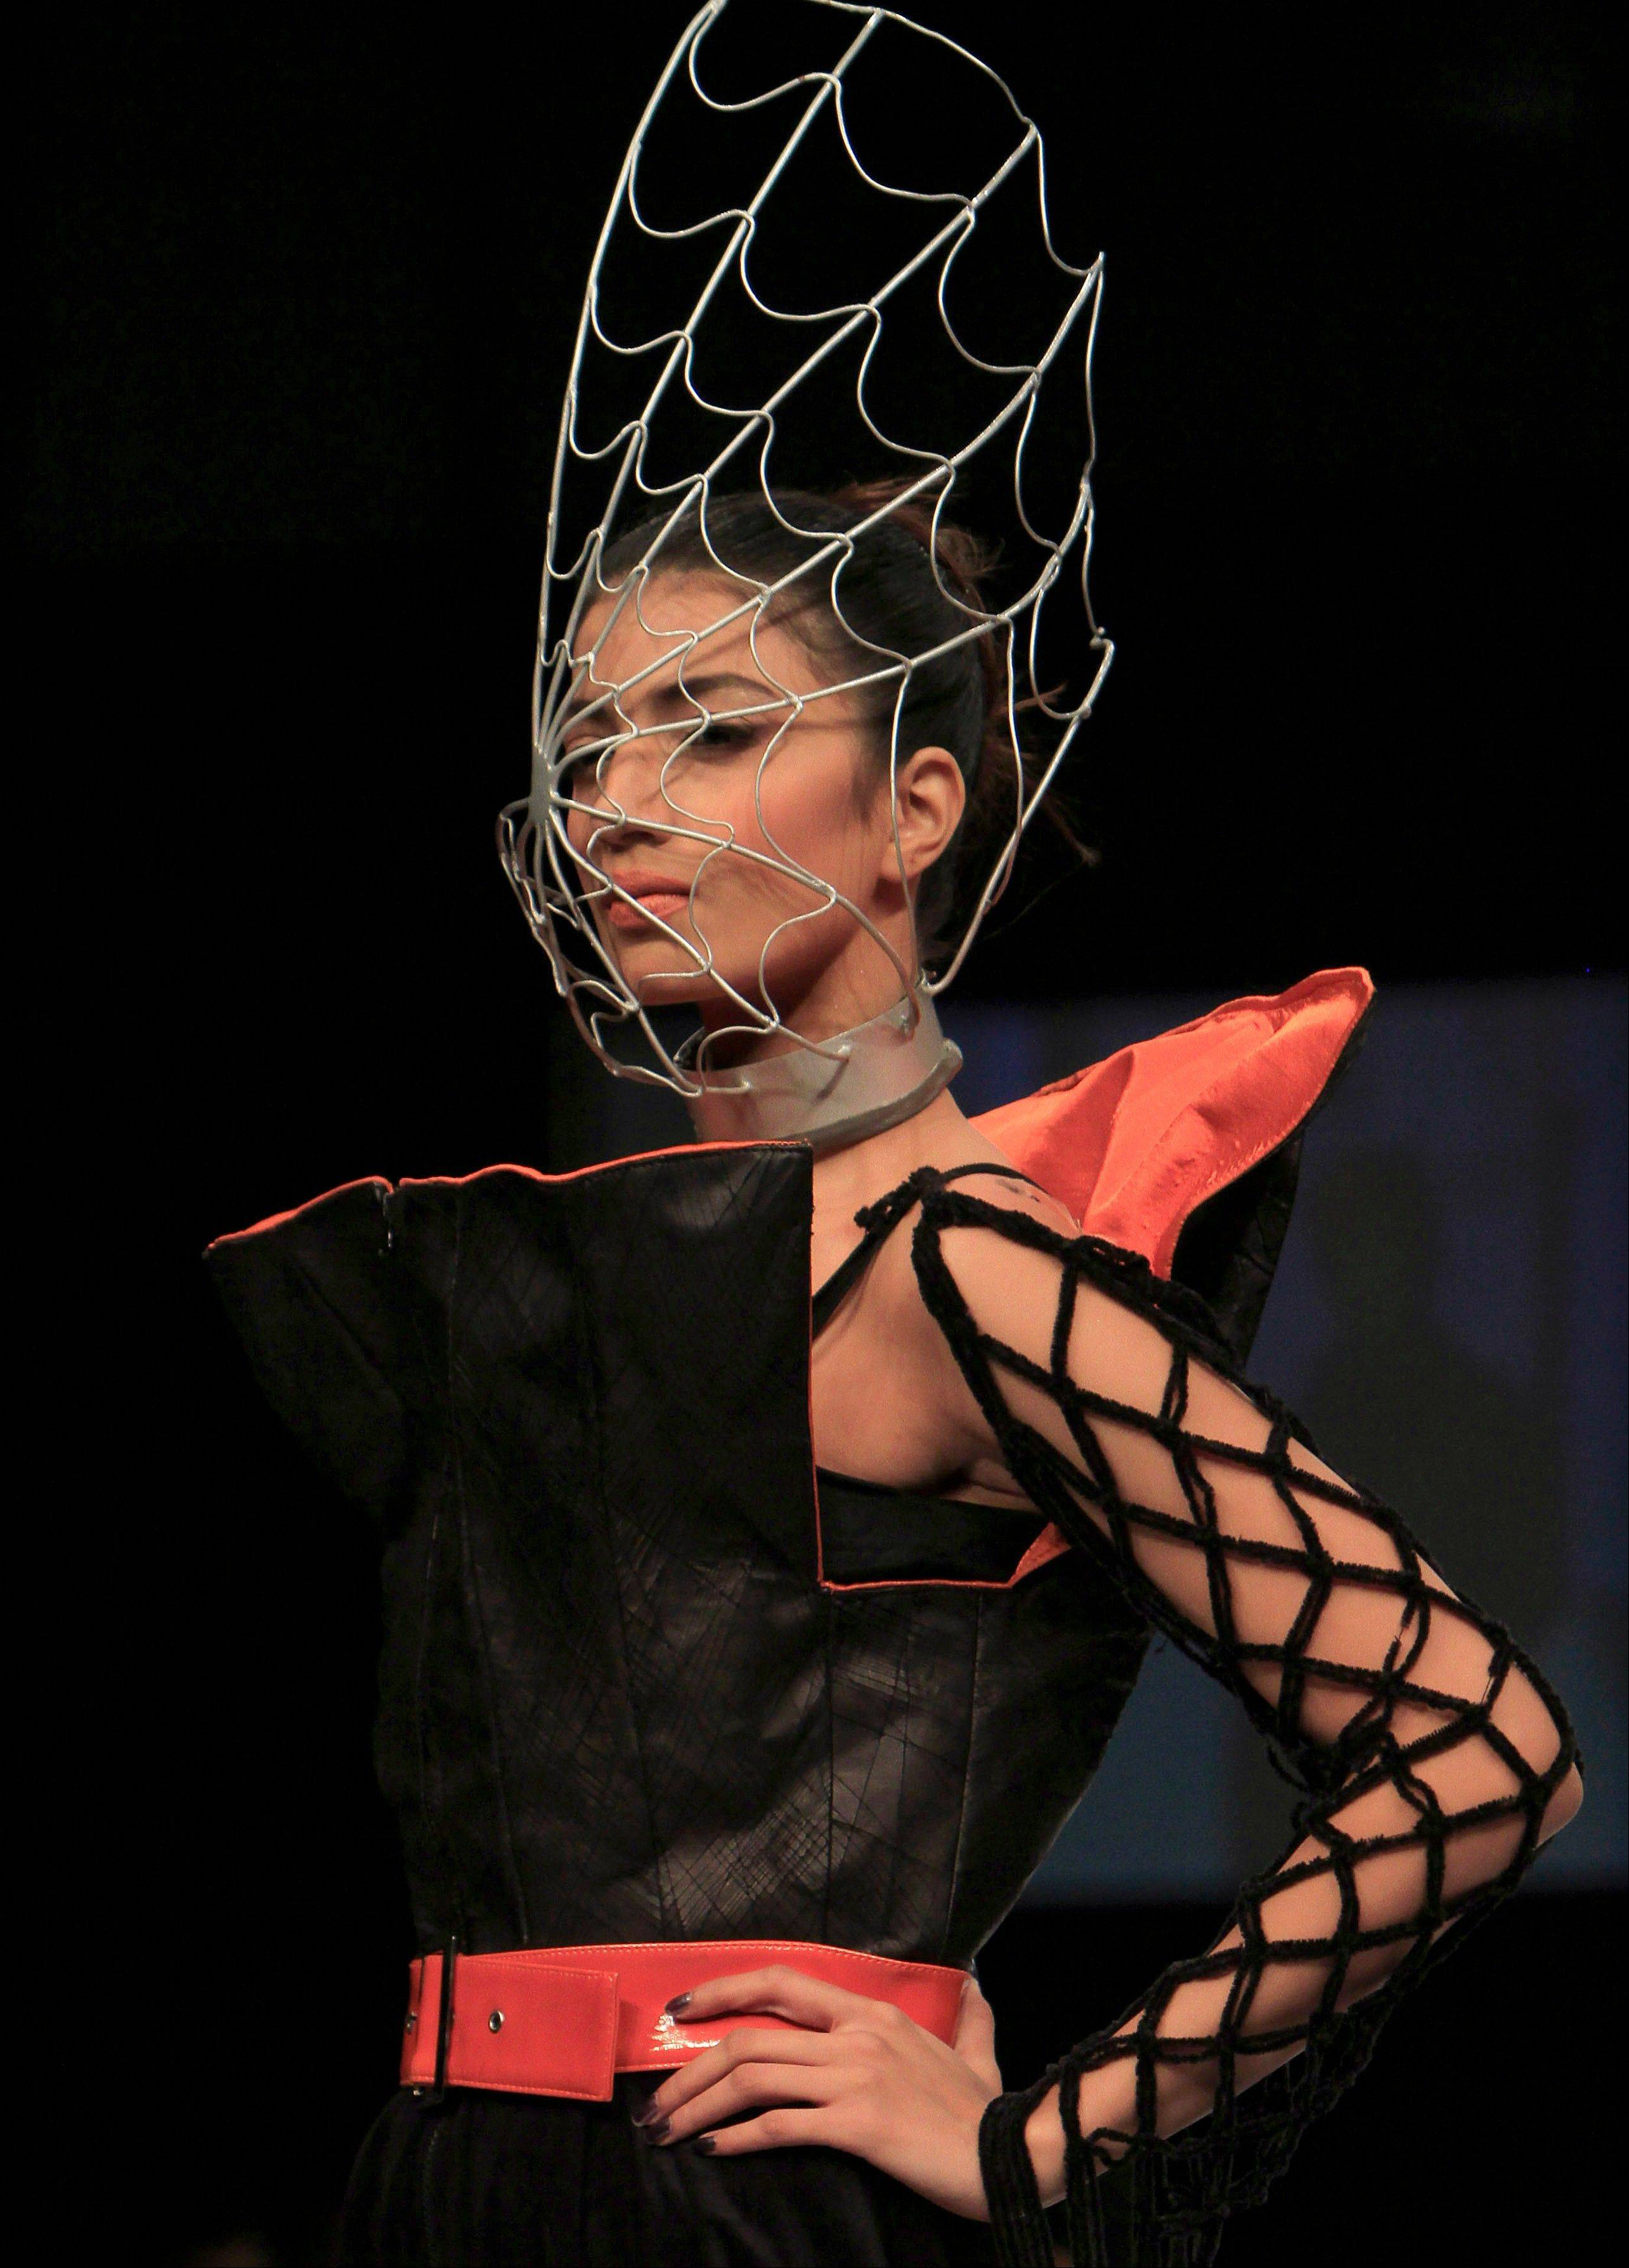 A model displays a creation by Pakistani designer Zaheer Abbas during a Fashion show in Karachi, Pakistan on Thursday, Oct. 20, 2011.